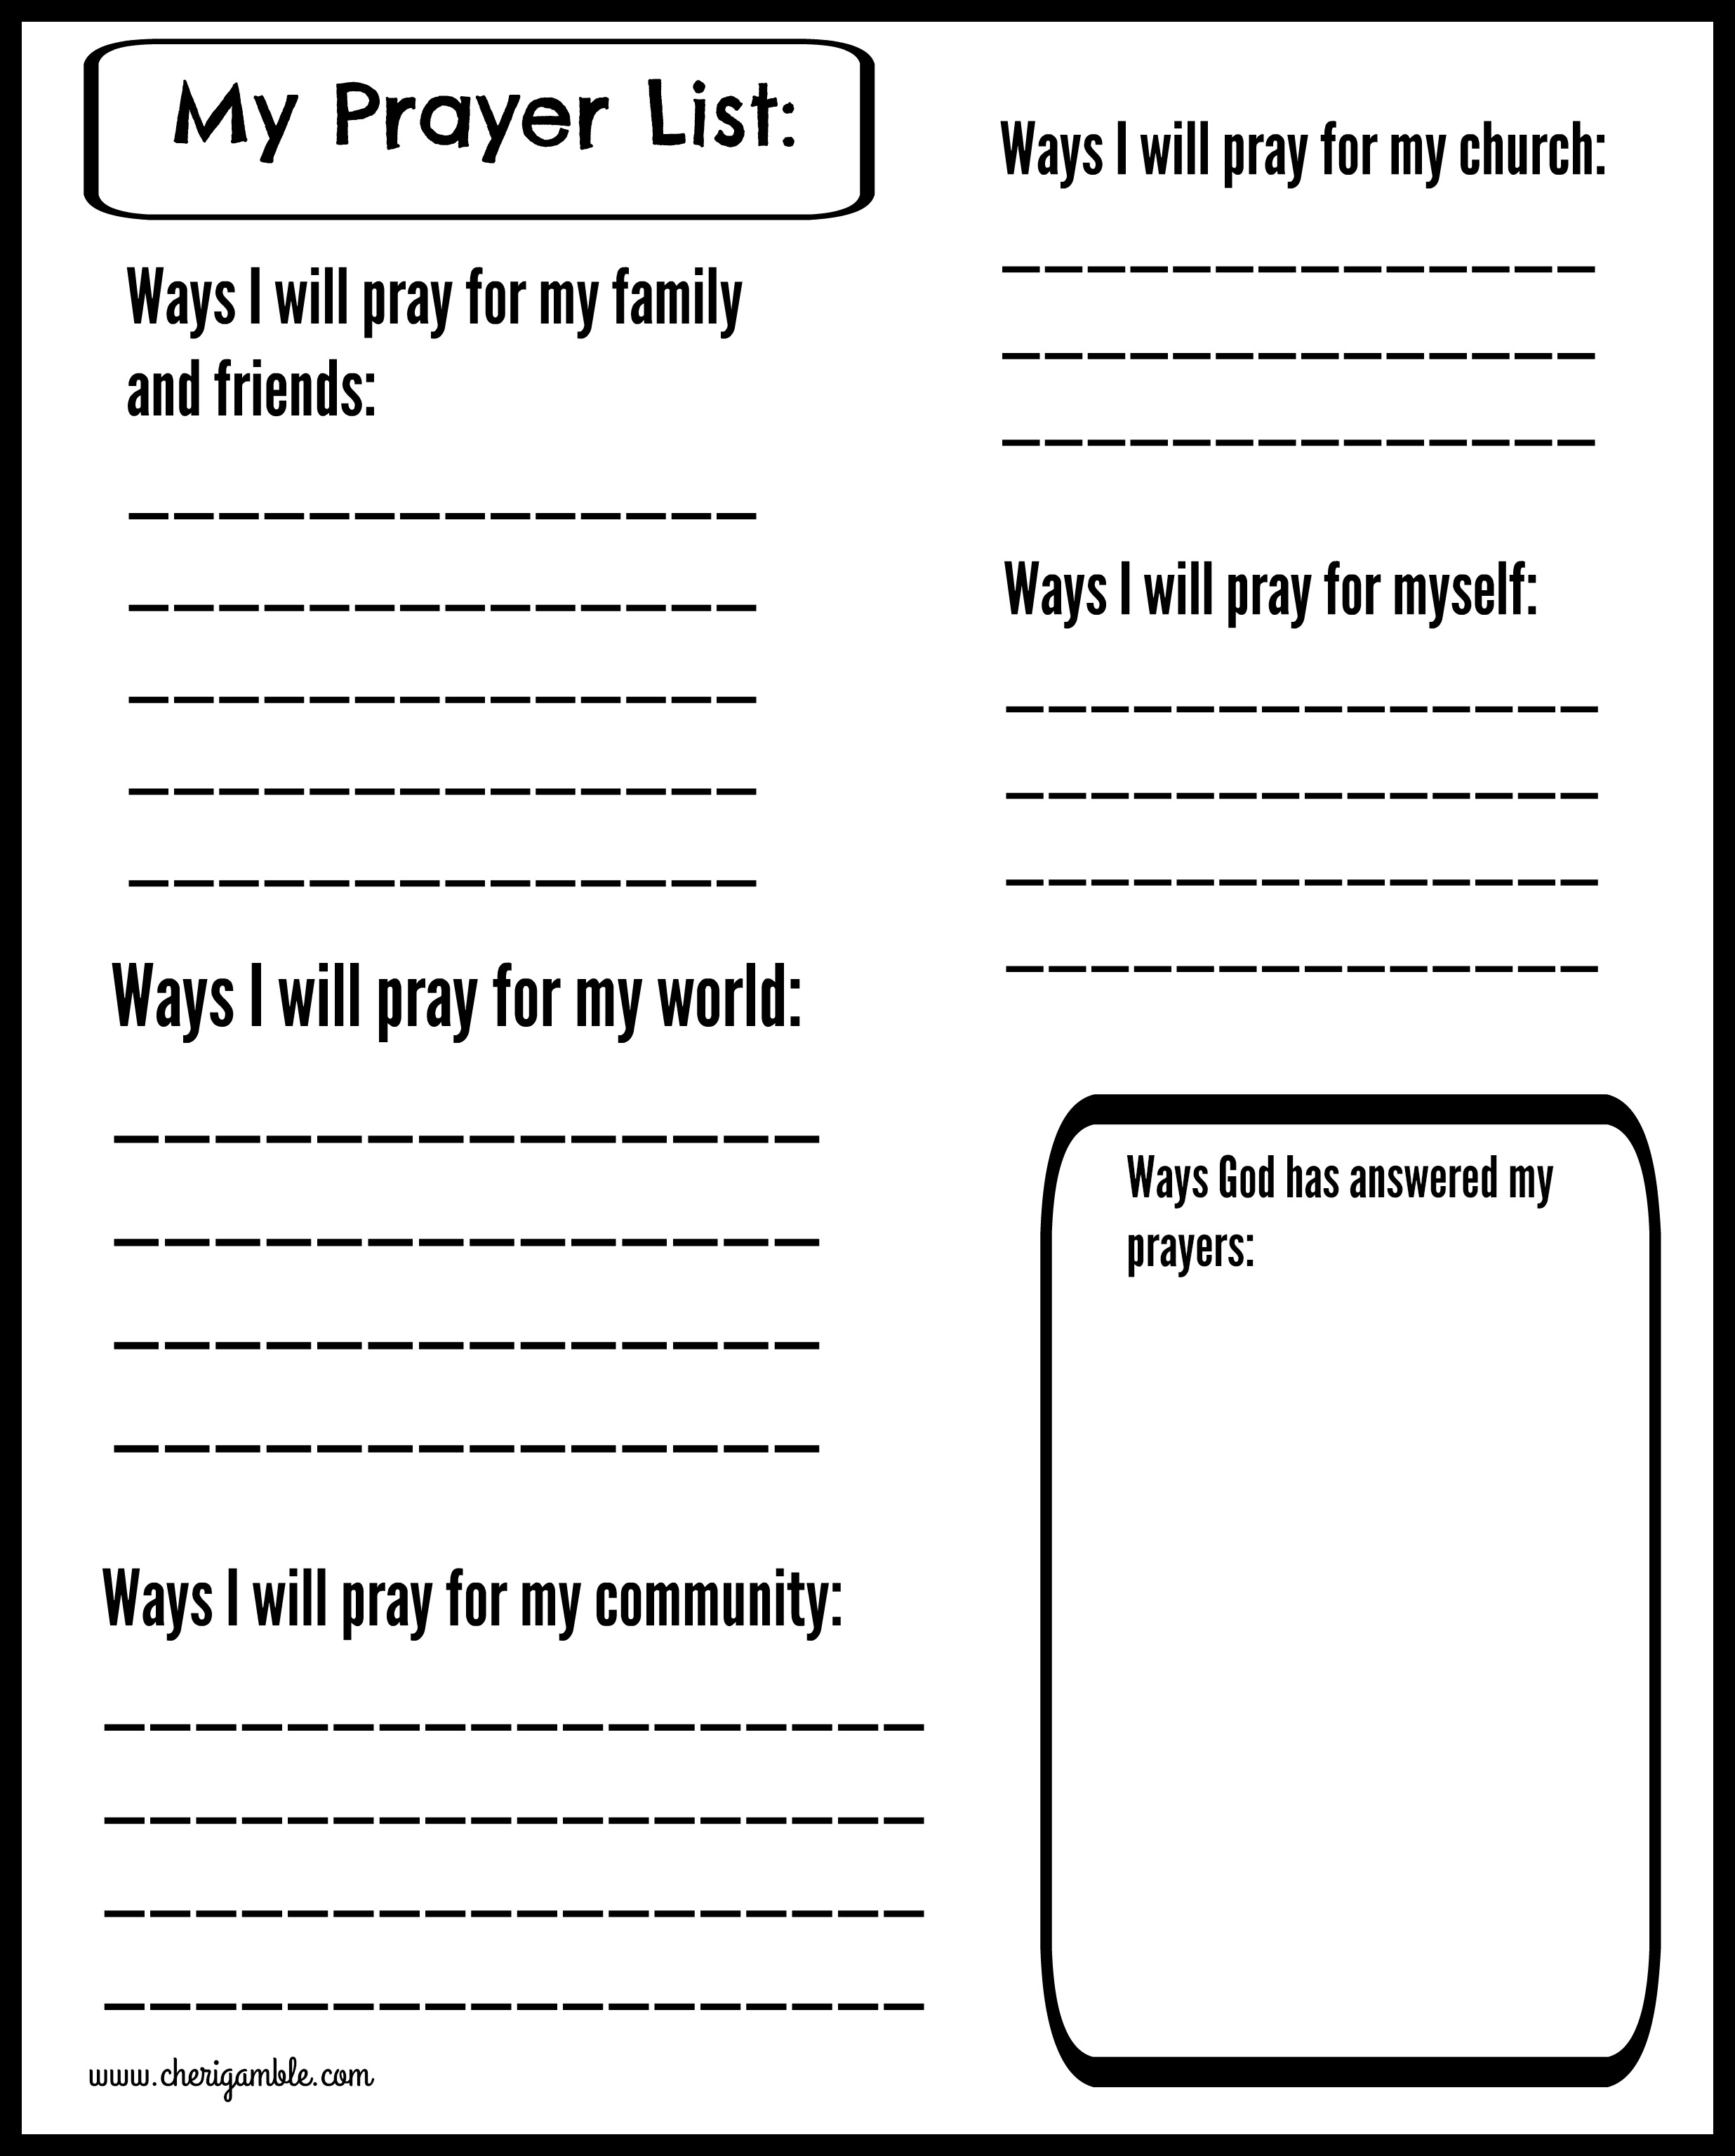 graphic relating to Prayer List Printable named Printable Prayer Publications for Young children Cheri Gamble